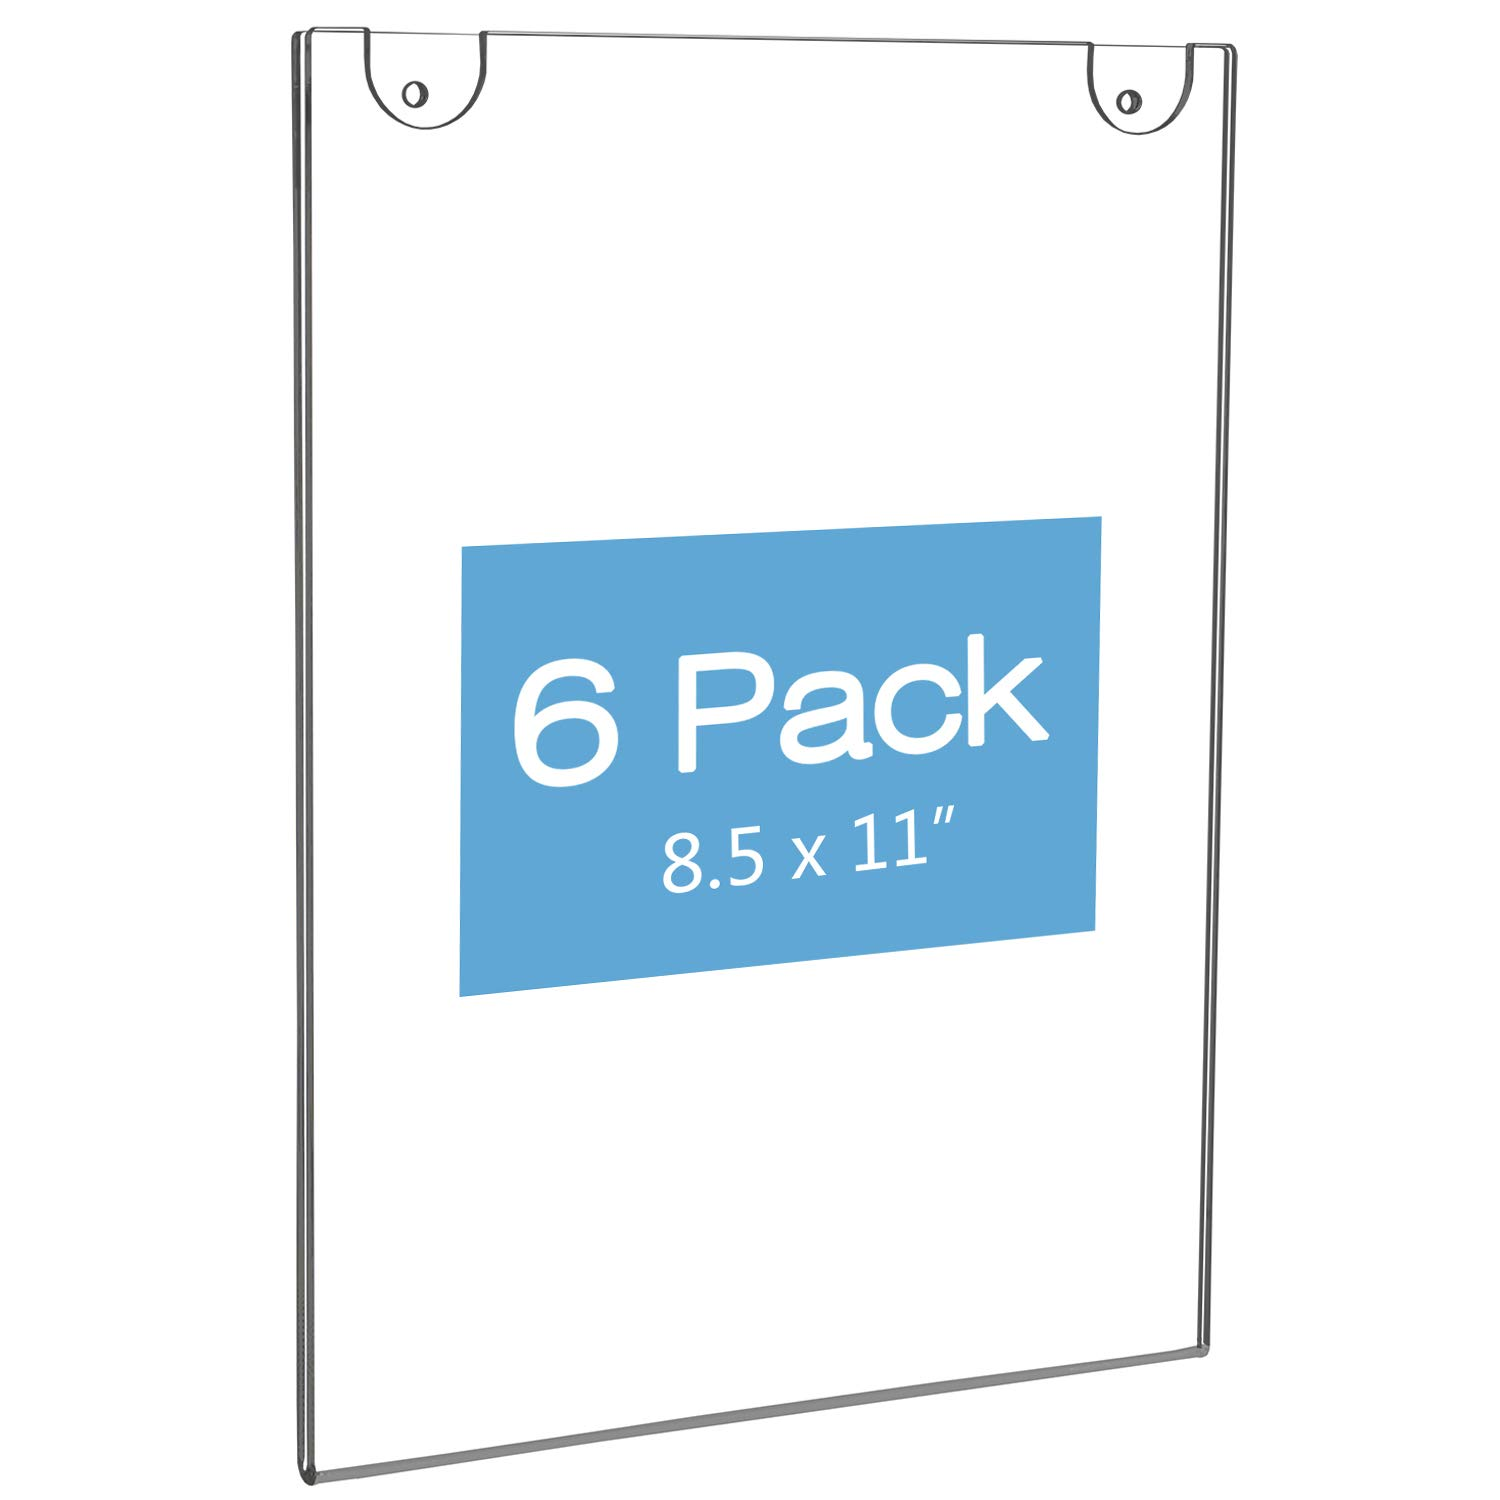 NIUBEE Acrylic Wall Sign Holder 8.5x11 Vertical, Clear Plastic Ads Frame for Paper, Bonus with 3M Tape and Mounting Screws(6 Pack) by NIUBEE